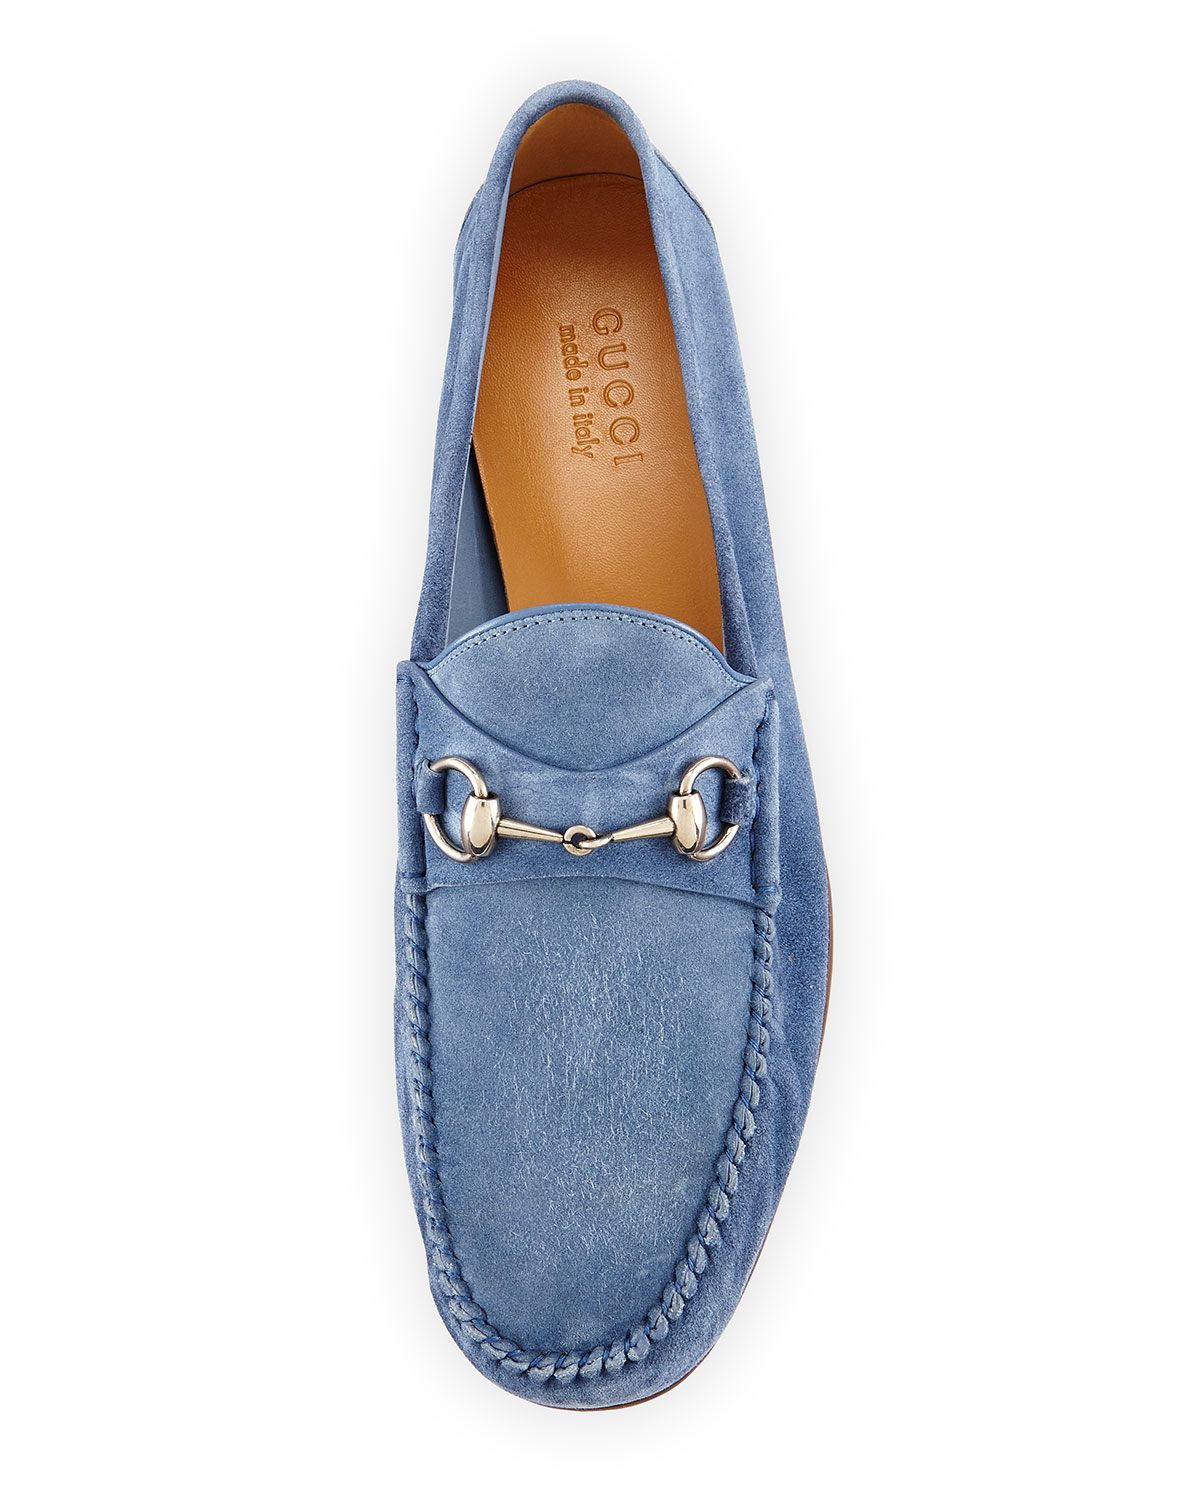 9a592eec4 Gucci Unlined Suede Horsebit Loafer in Blue for Men - Lyst